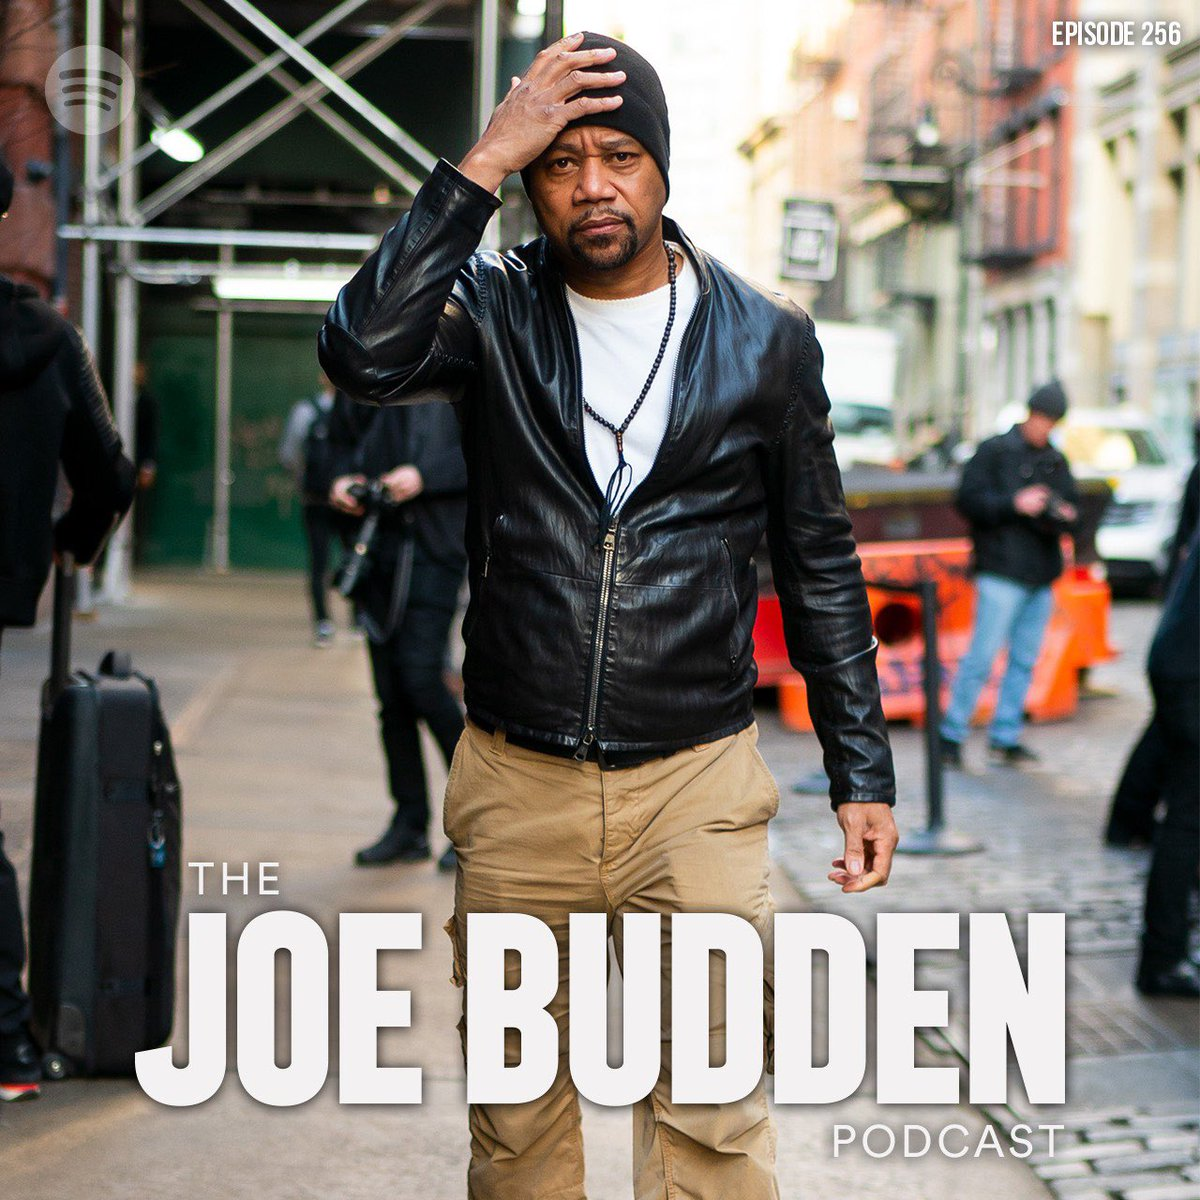 "The @JoeBudden Podcast Episode 256 ""Knee High Levi's"" is available now!  Stream exclusively on @Spotify  LISTEN HERE 🎧: https://open.spotify.com/episode/5ZeOGGM4QFtYD8WIzgYZVm?si=FP1aJ5clSi2ZkZ-dz_rVjQ …"